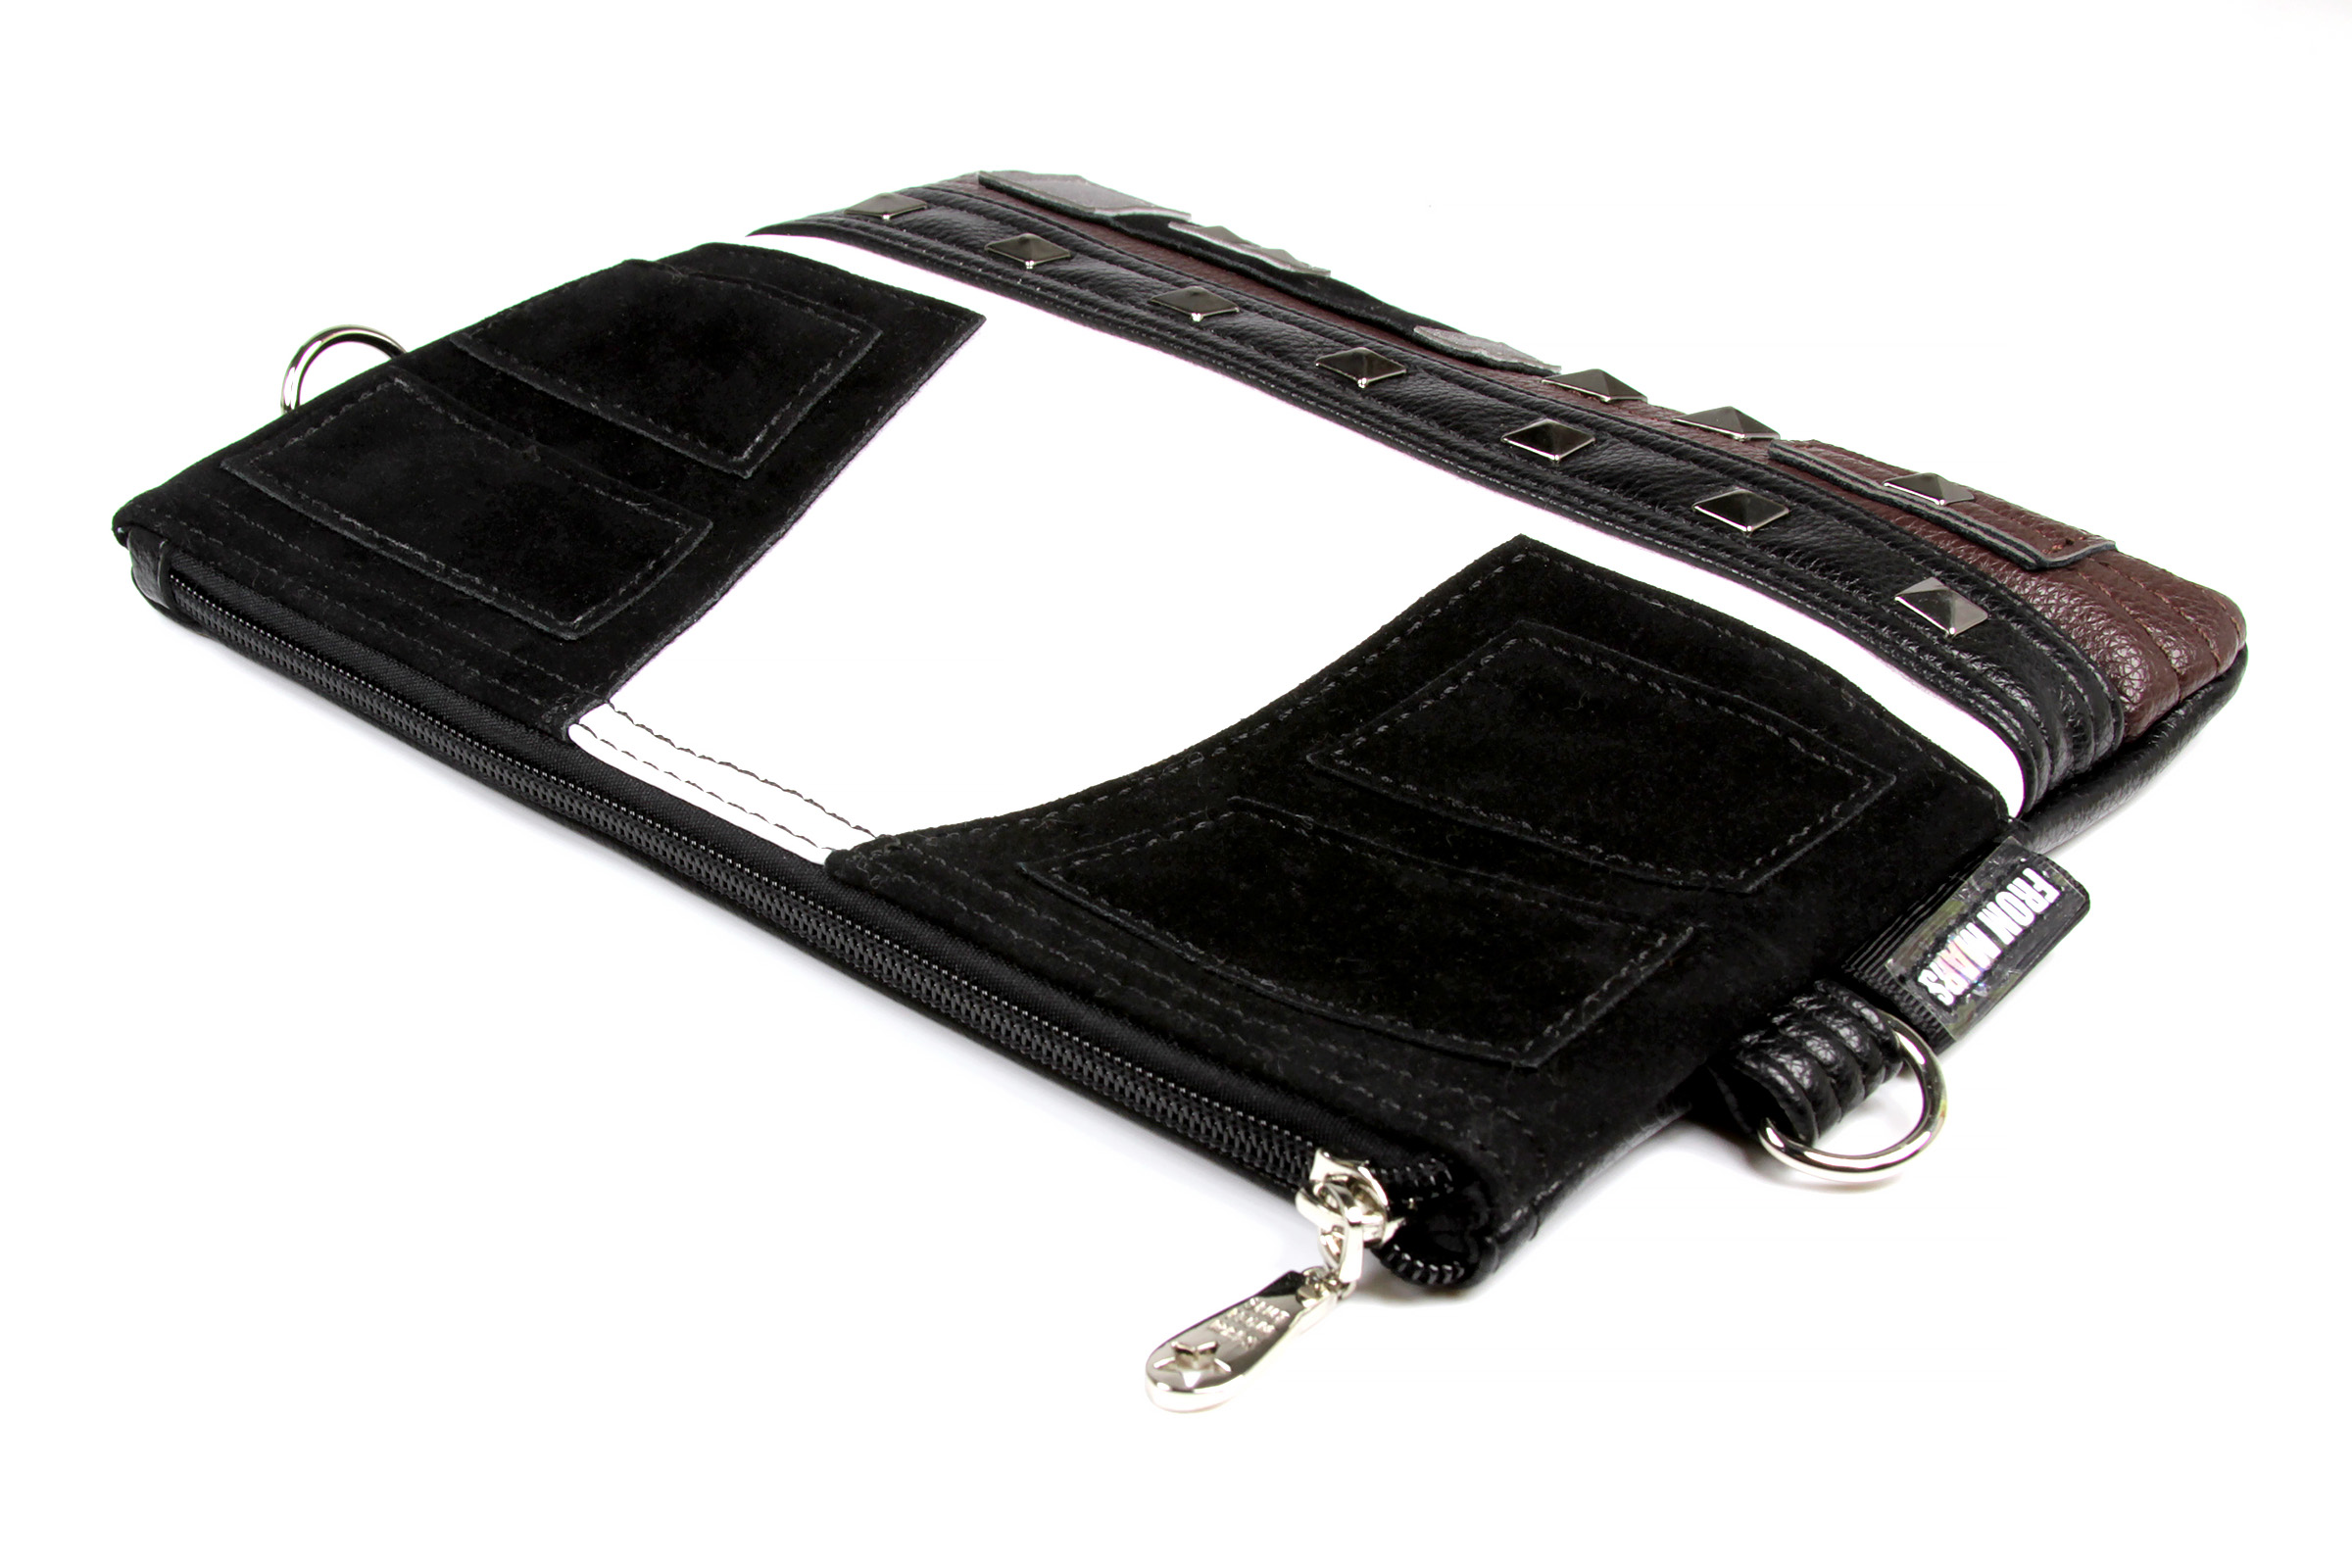 Sent From Mars - Star Wars Han Solo Inspired Millennium Purse